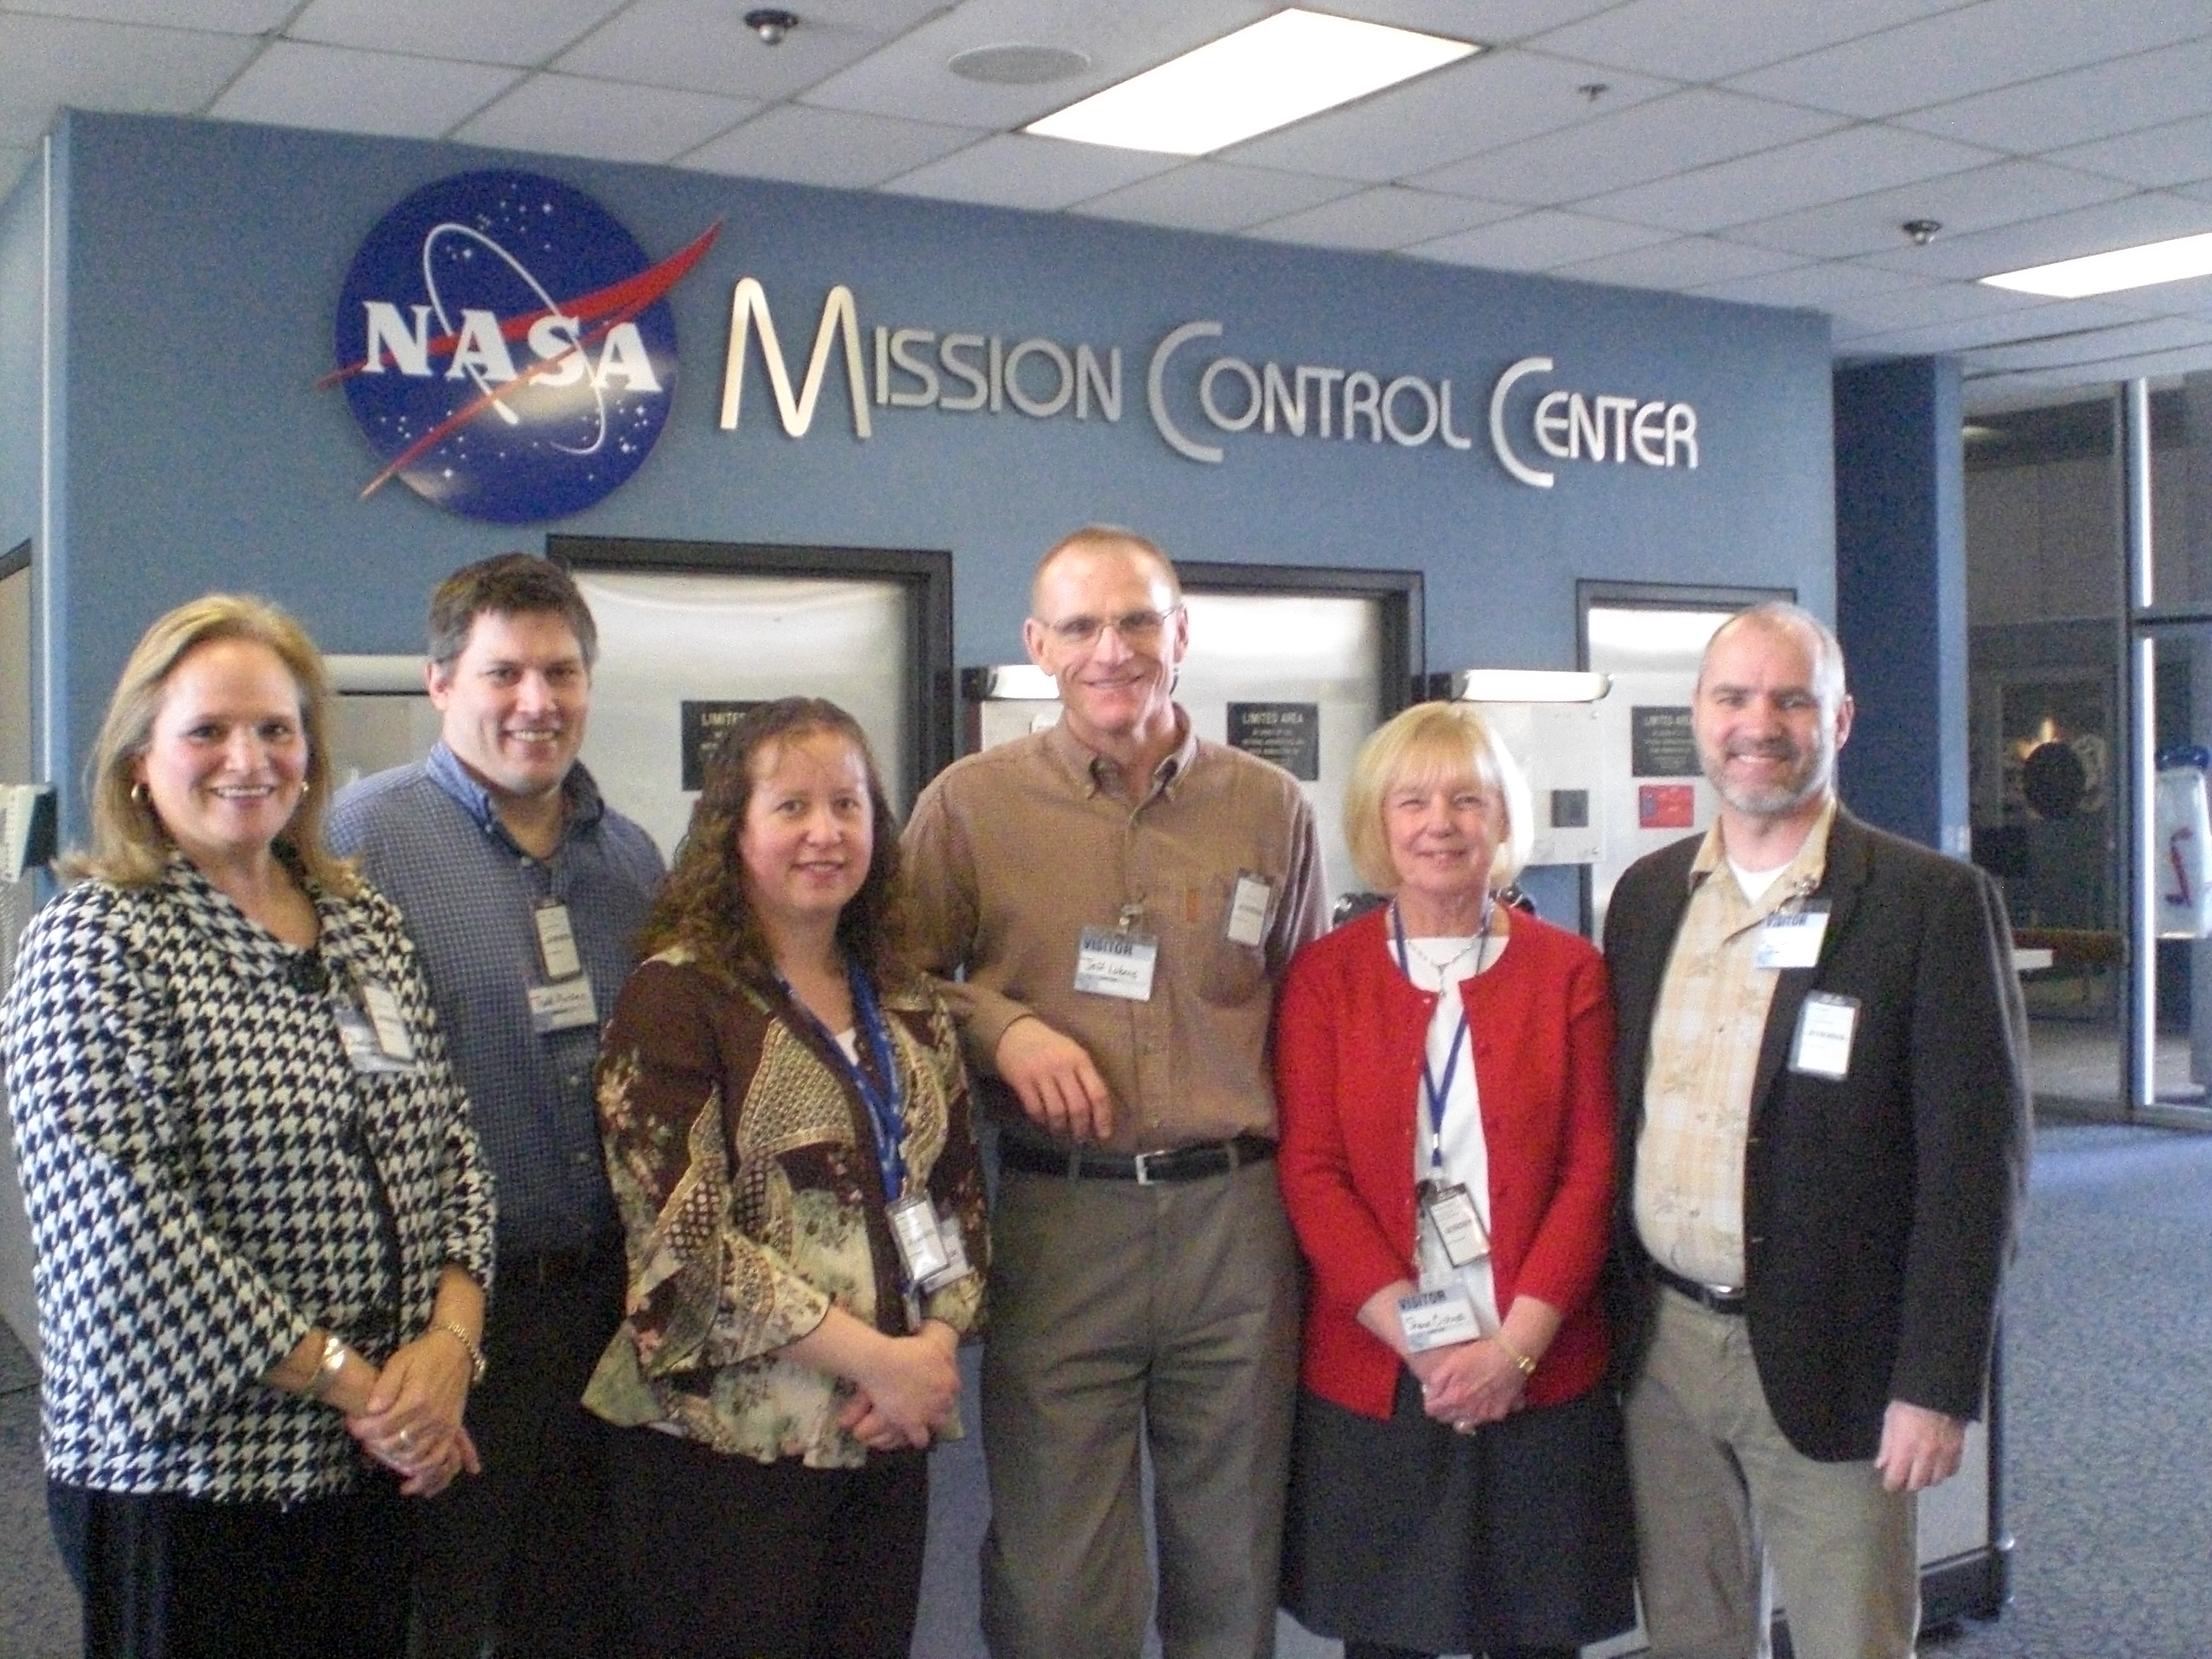 TI Education Manager and Master Instructors pose for a picture before touring the mission control centers at NASA Johnson Space Center